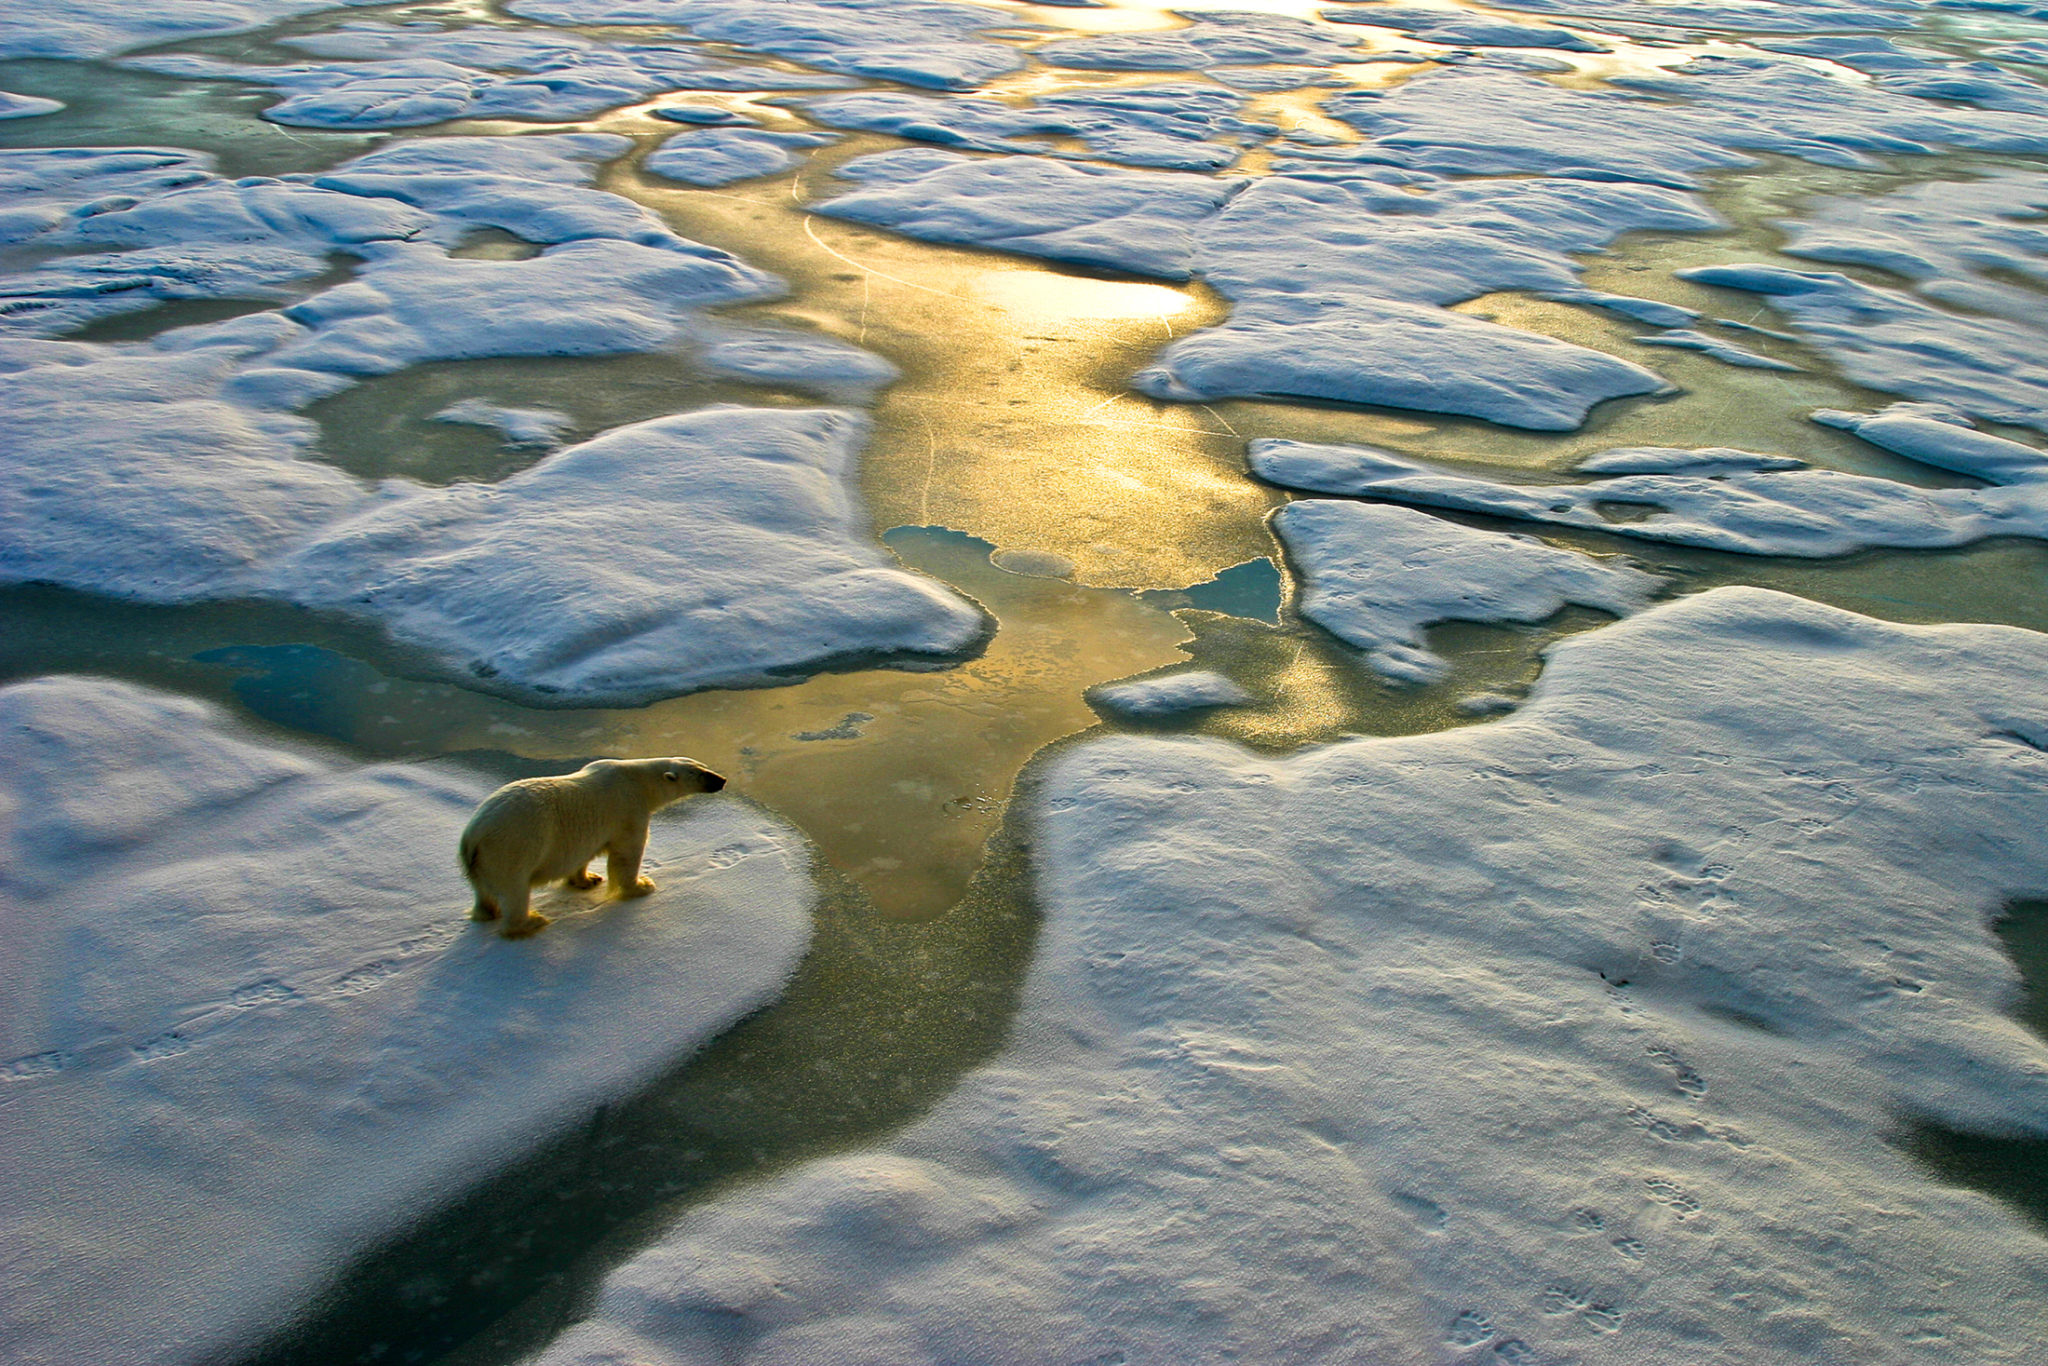 Polar bear near melting ice as a symbol of climate change